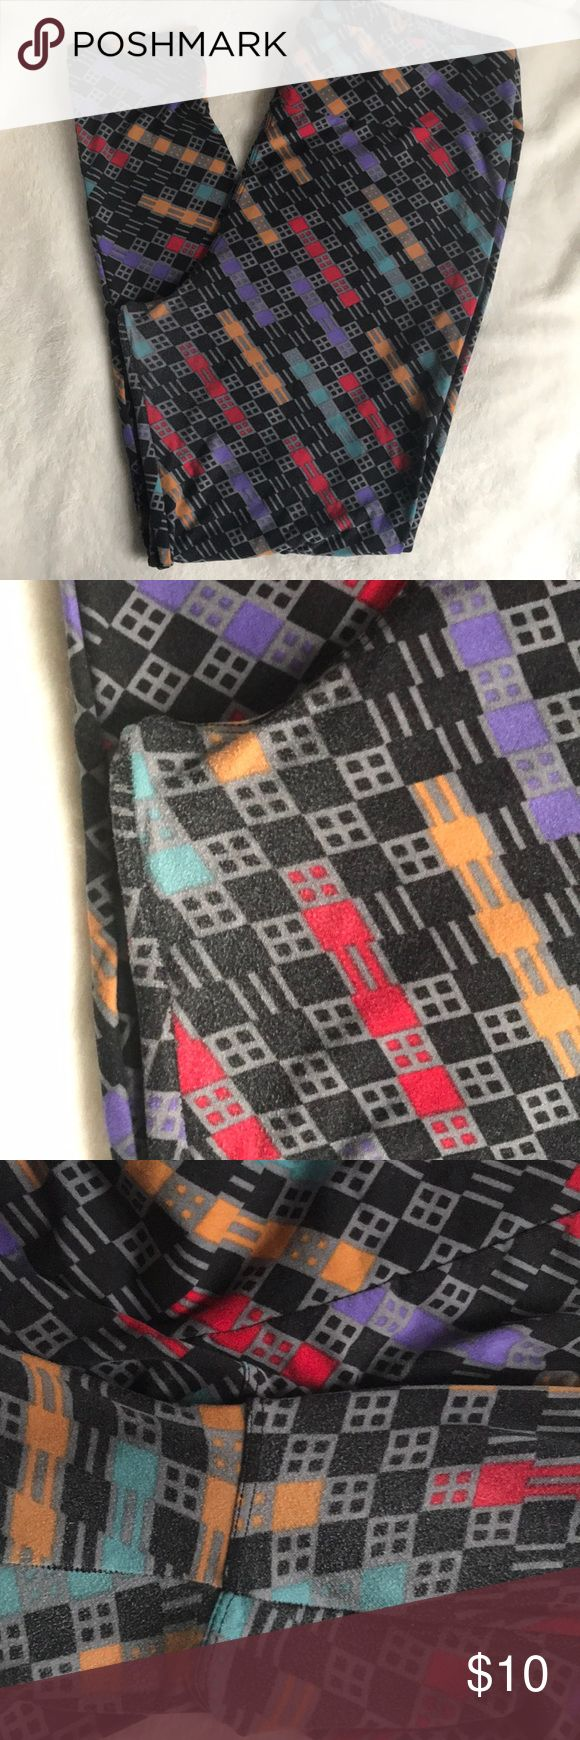 TC LuLaRoe leggings TC LuLaRoe leggings black background with gray, red, purple, mustard, and aqua design...worn once has some piling where thighs rub....NO HOLES Washed once per Lularoe instructions LuLaRoe Pants Leggings